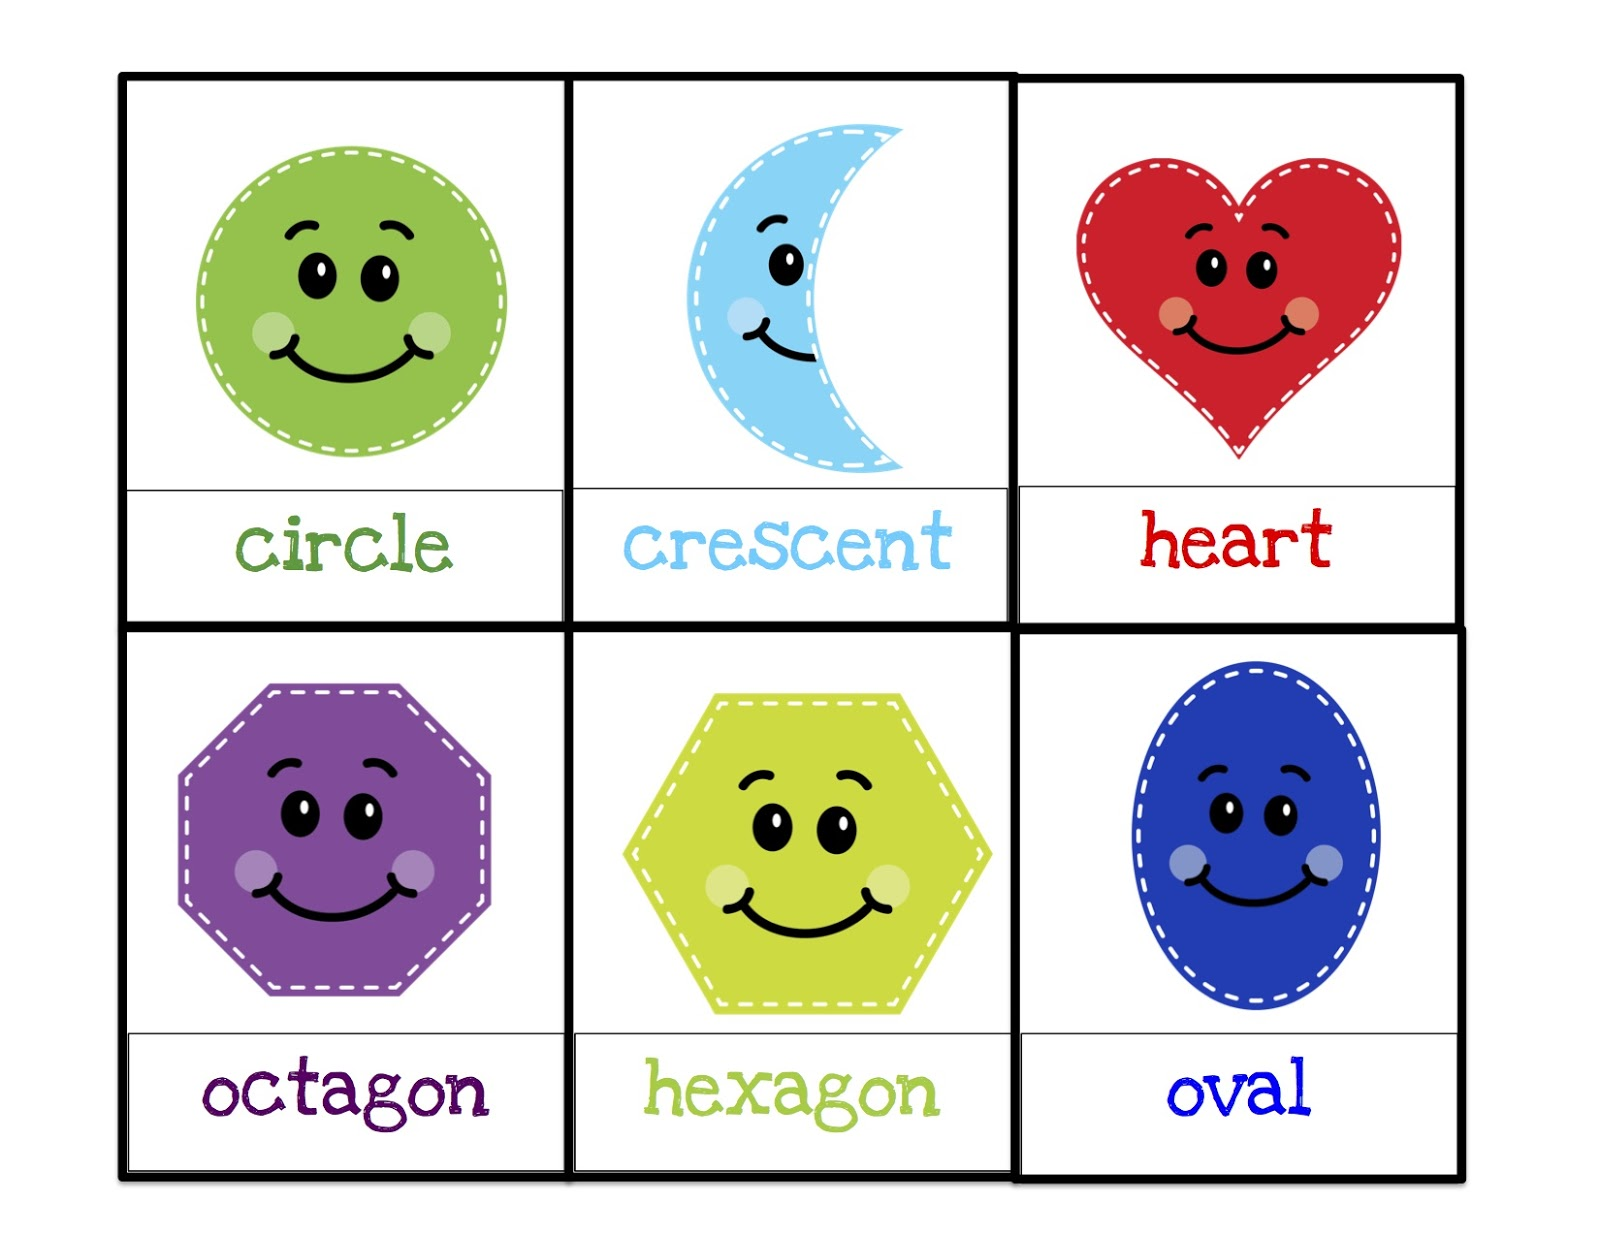 It's just an image of Monster Printable Shapes for Preschoolers